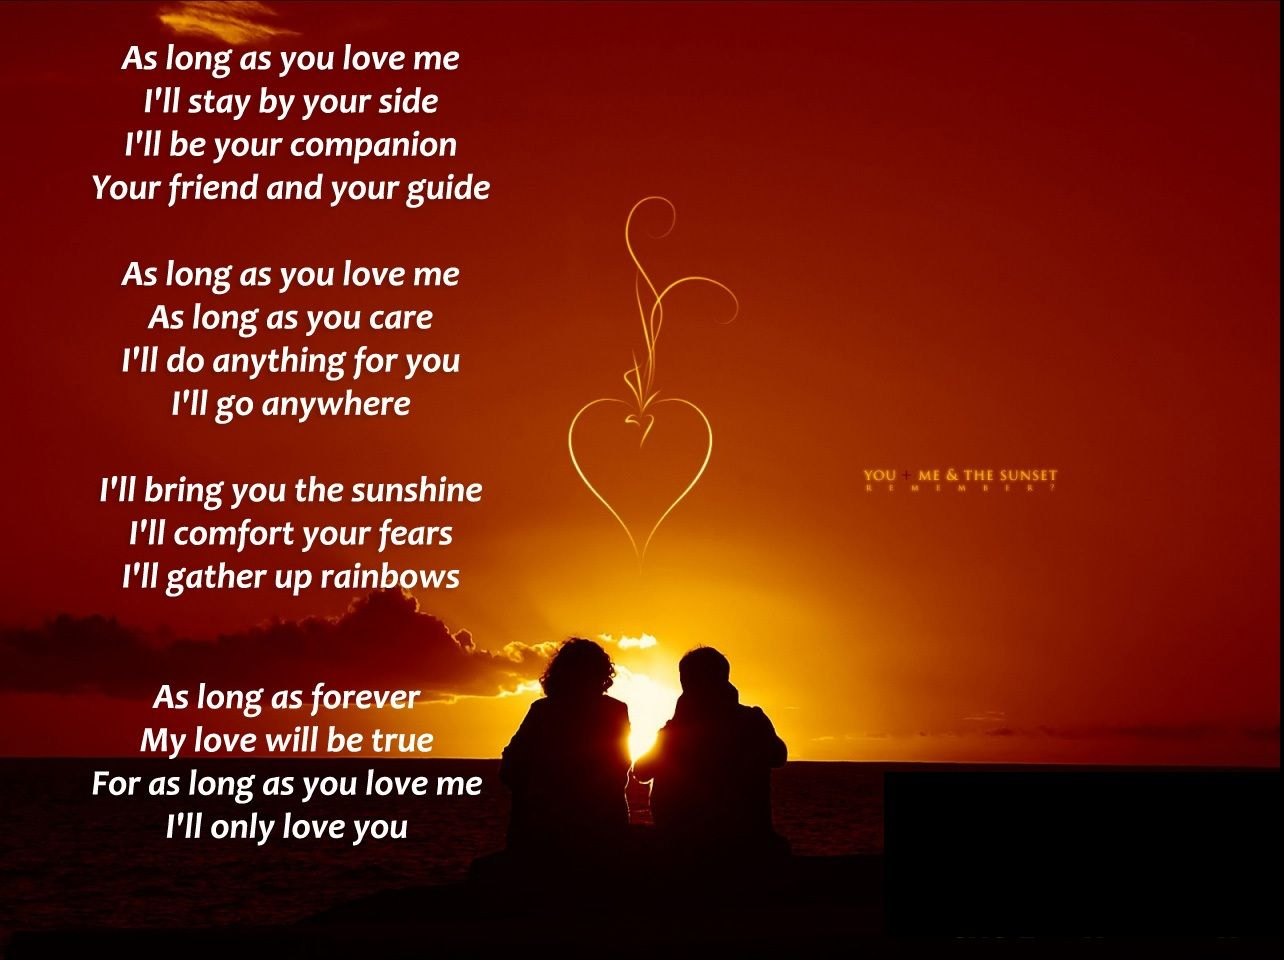 Love Poem Wallpaper